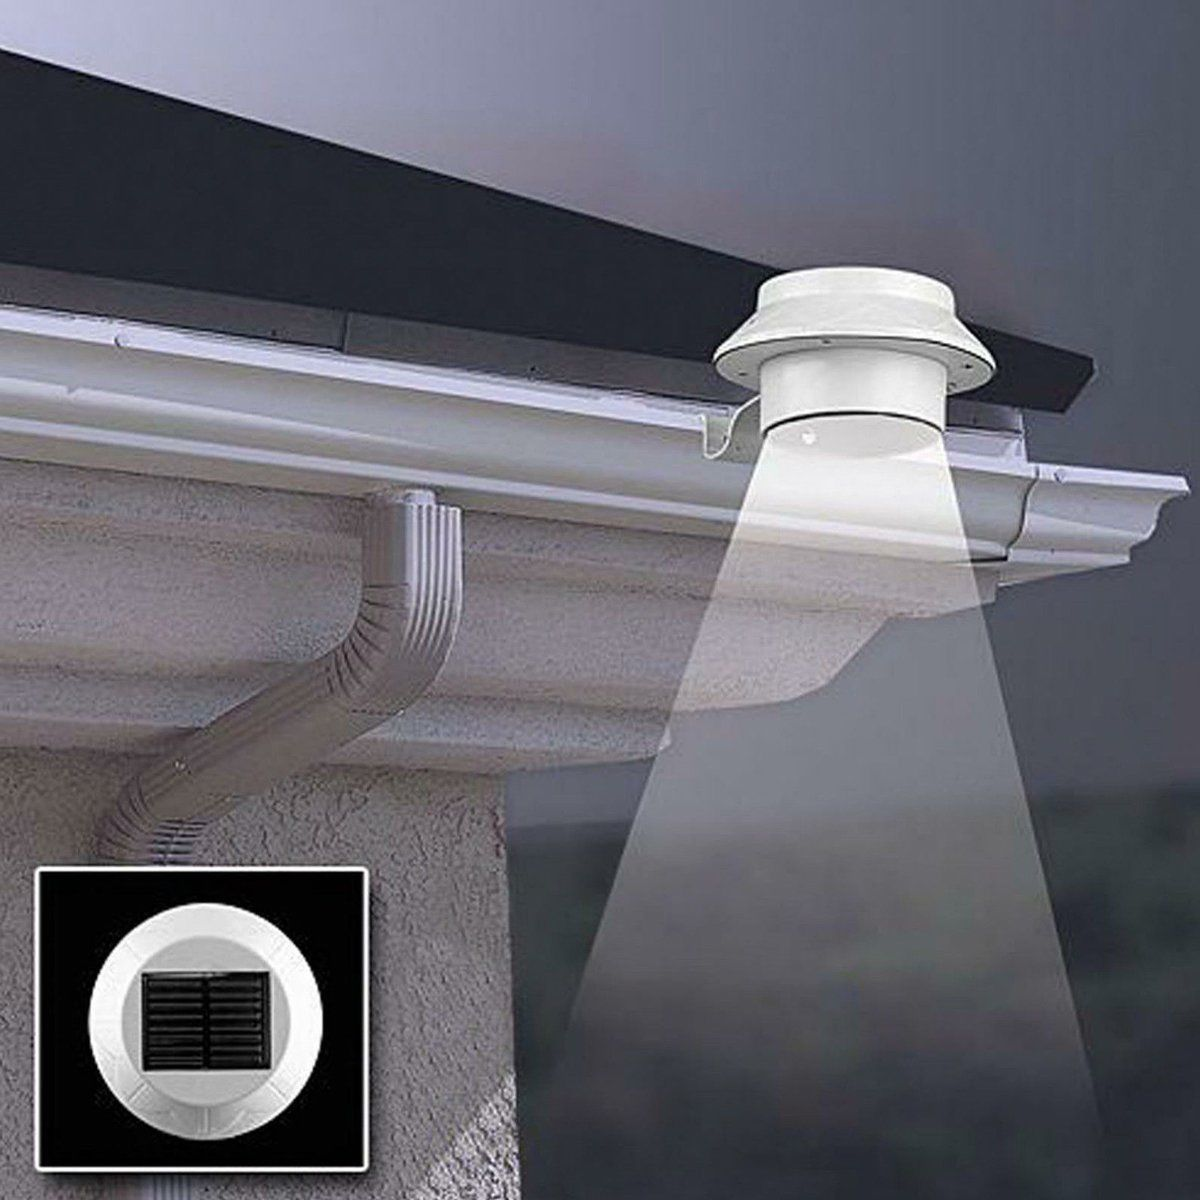 Solar Lights Roof: Outdoor Garden Solar Powered Light Wall Roof Path